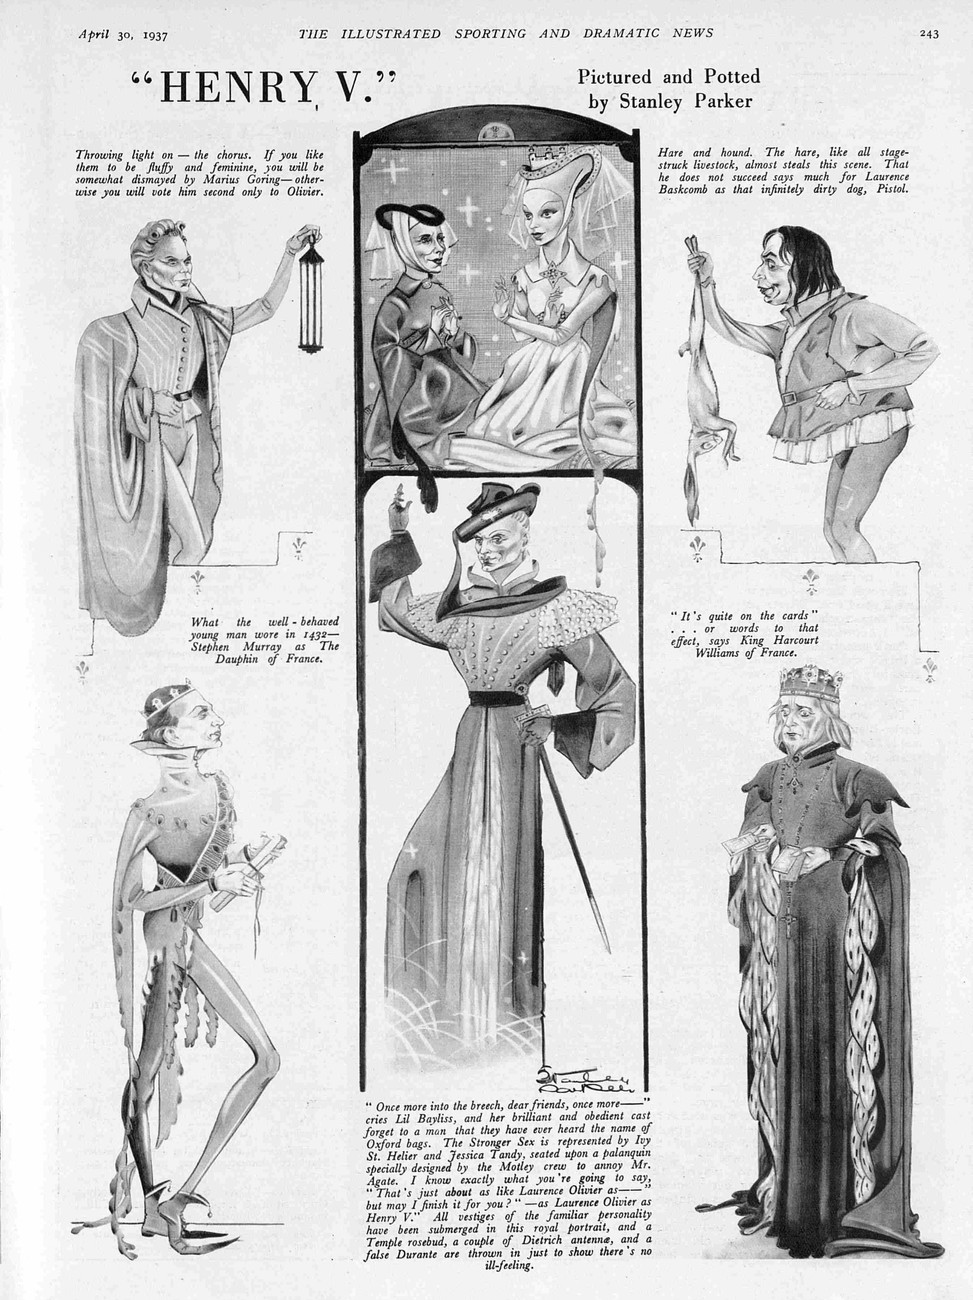 Henry V article & caricatures in Illustrated Sporting and Dramatic News 30 April 1937